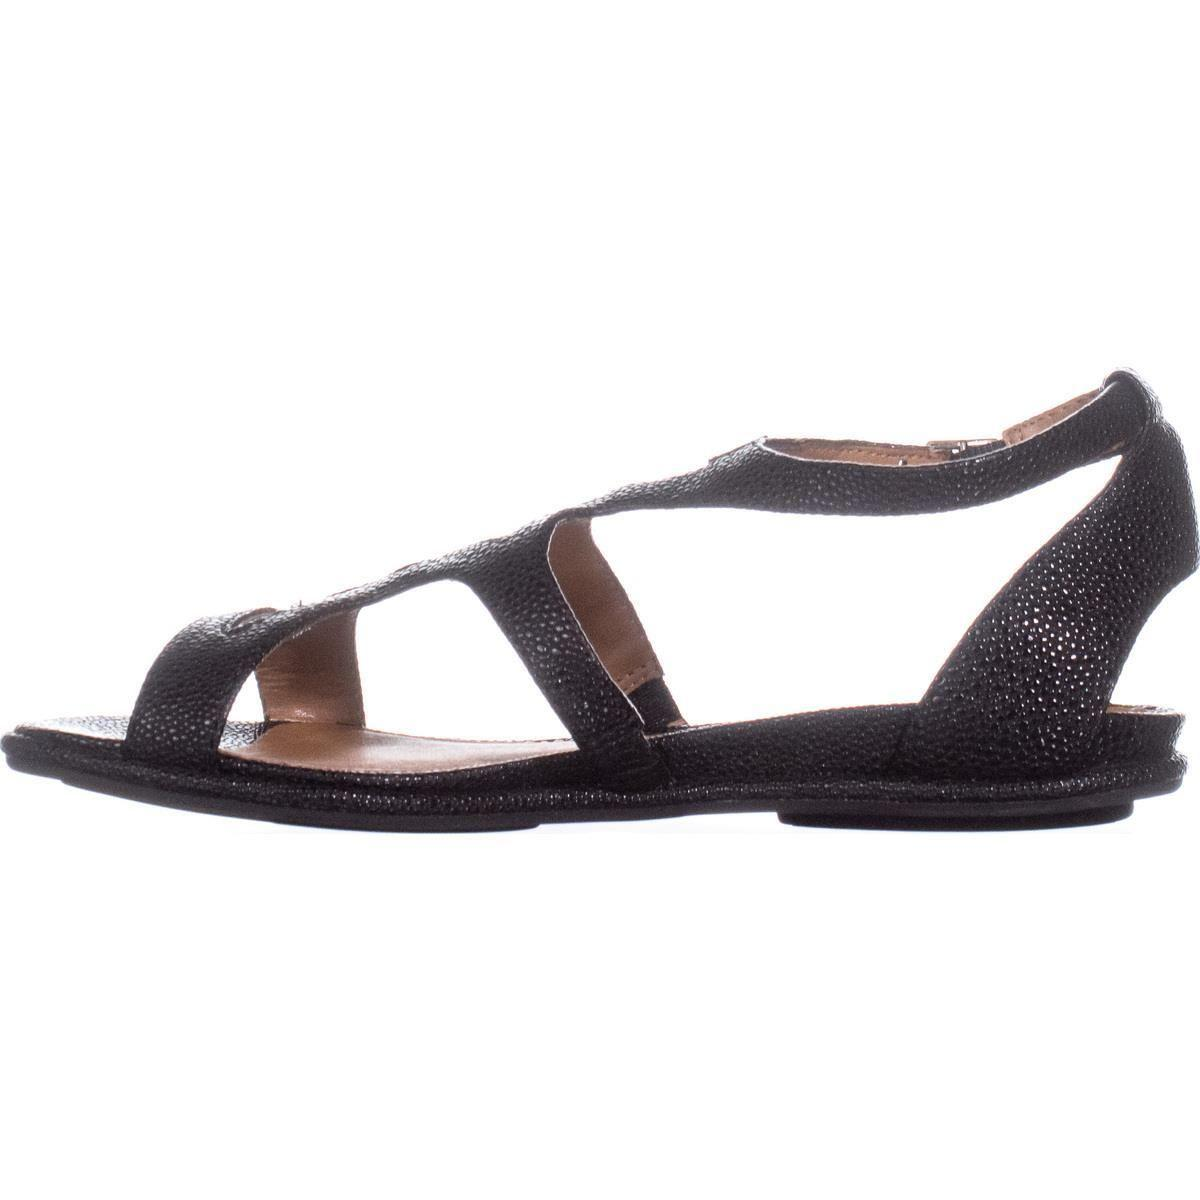 9c6c14a13f6 Lyst - Kenneth Cole Oak Strappy Flat Sandals - Save 13%